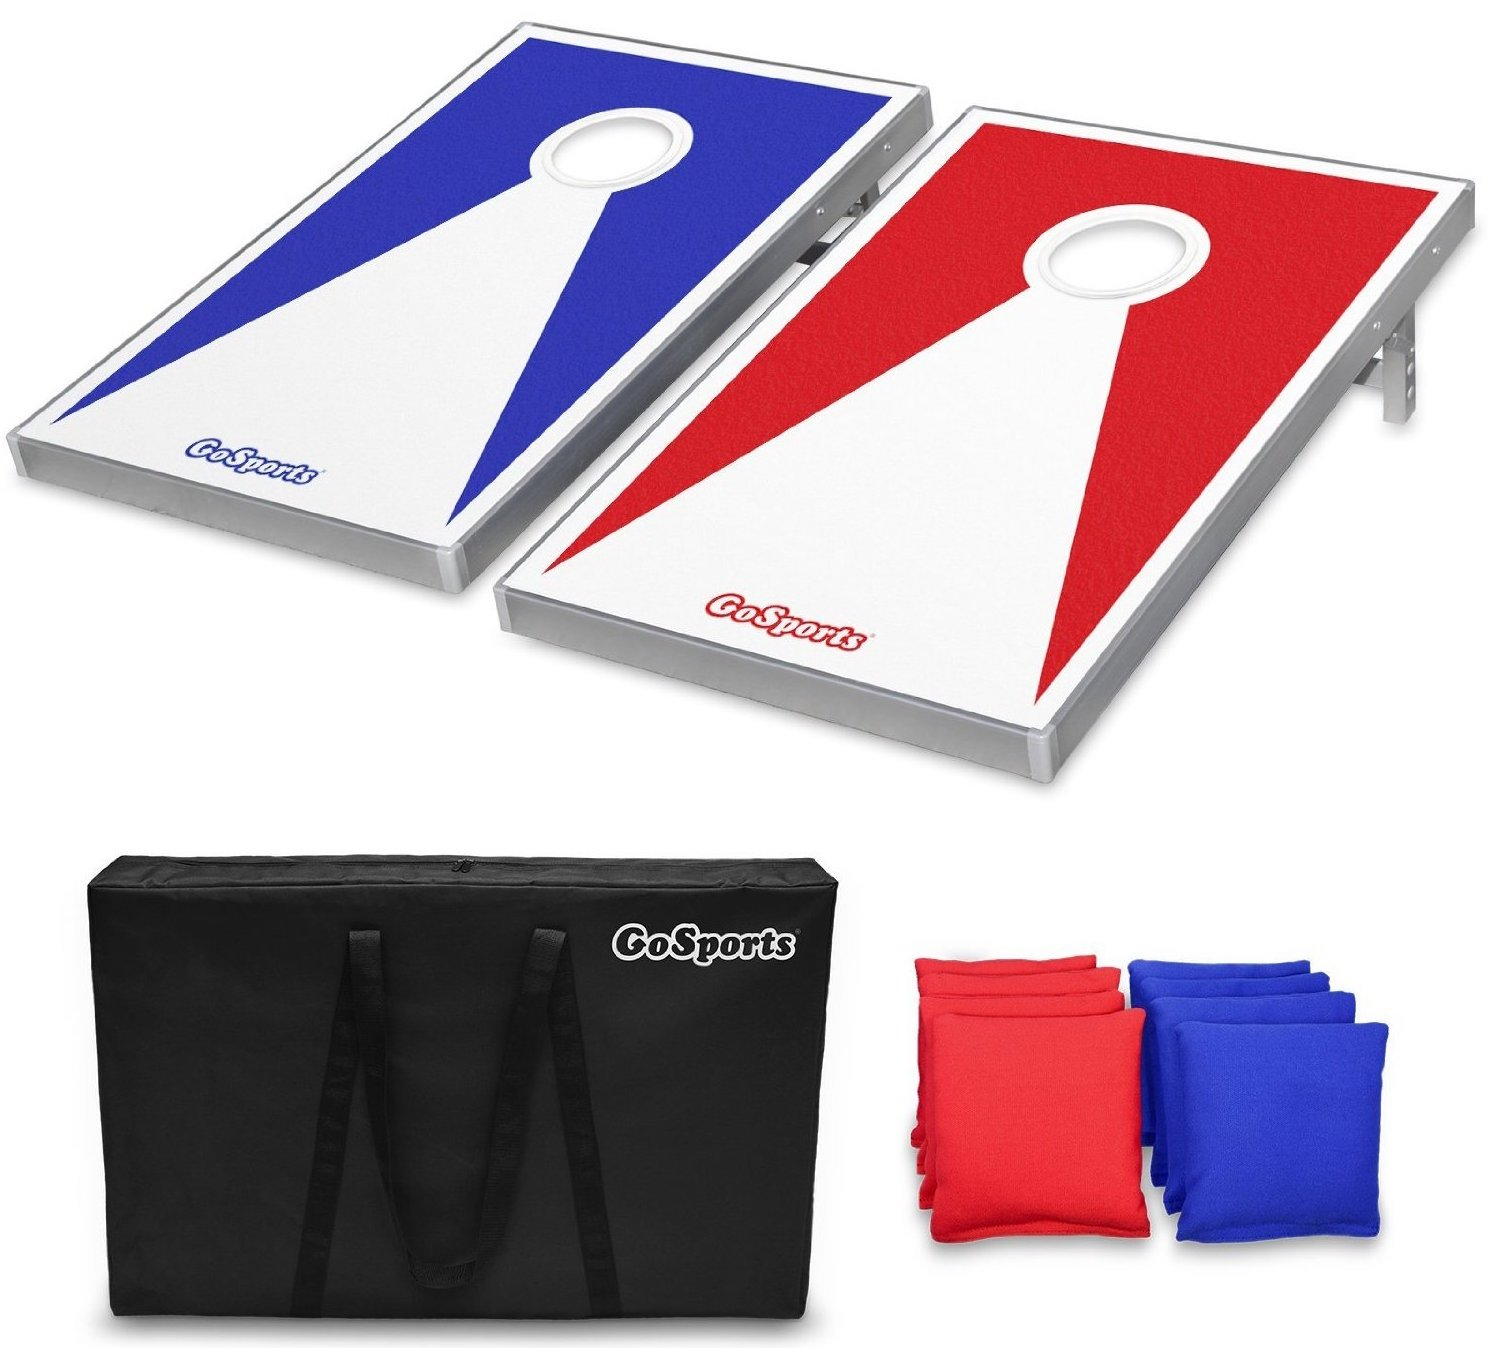 Corn Hole Bean Bag Toss Games